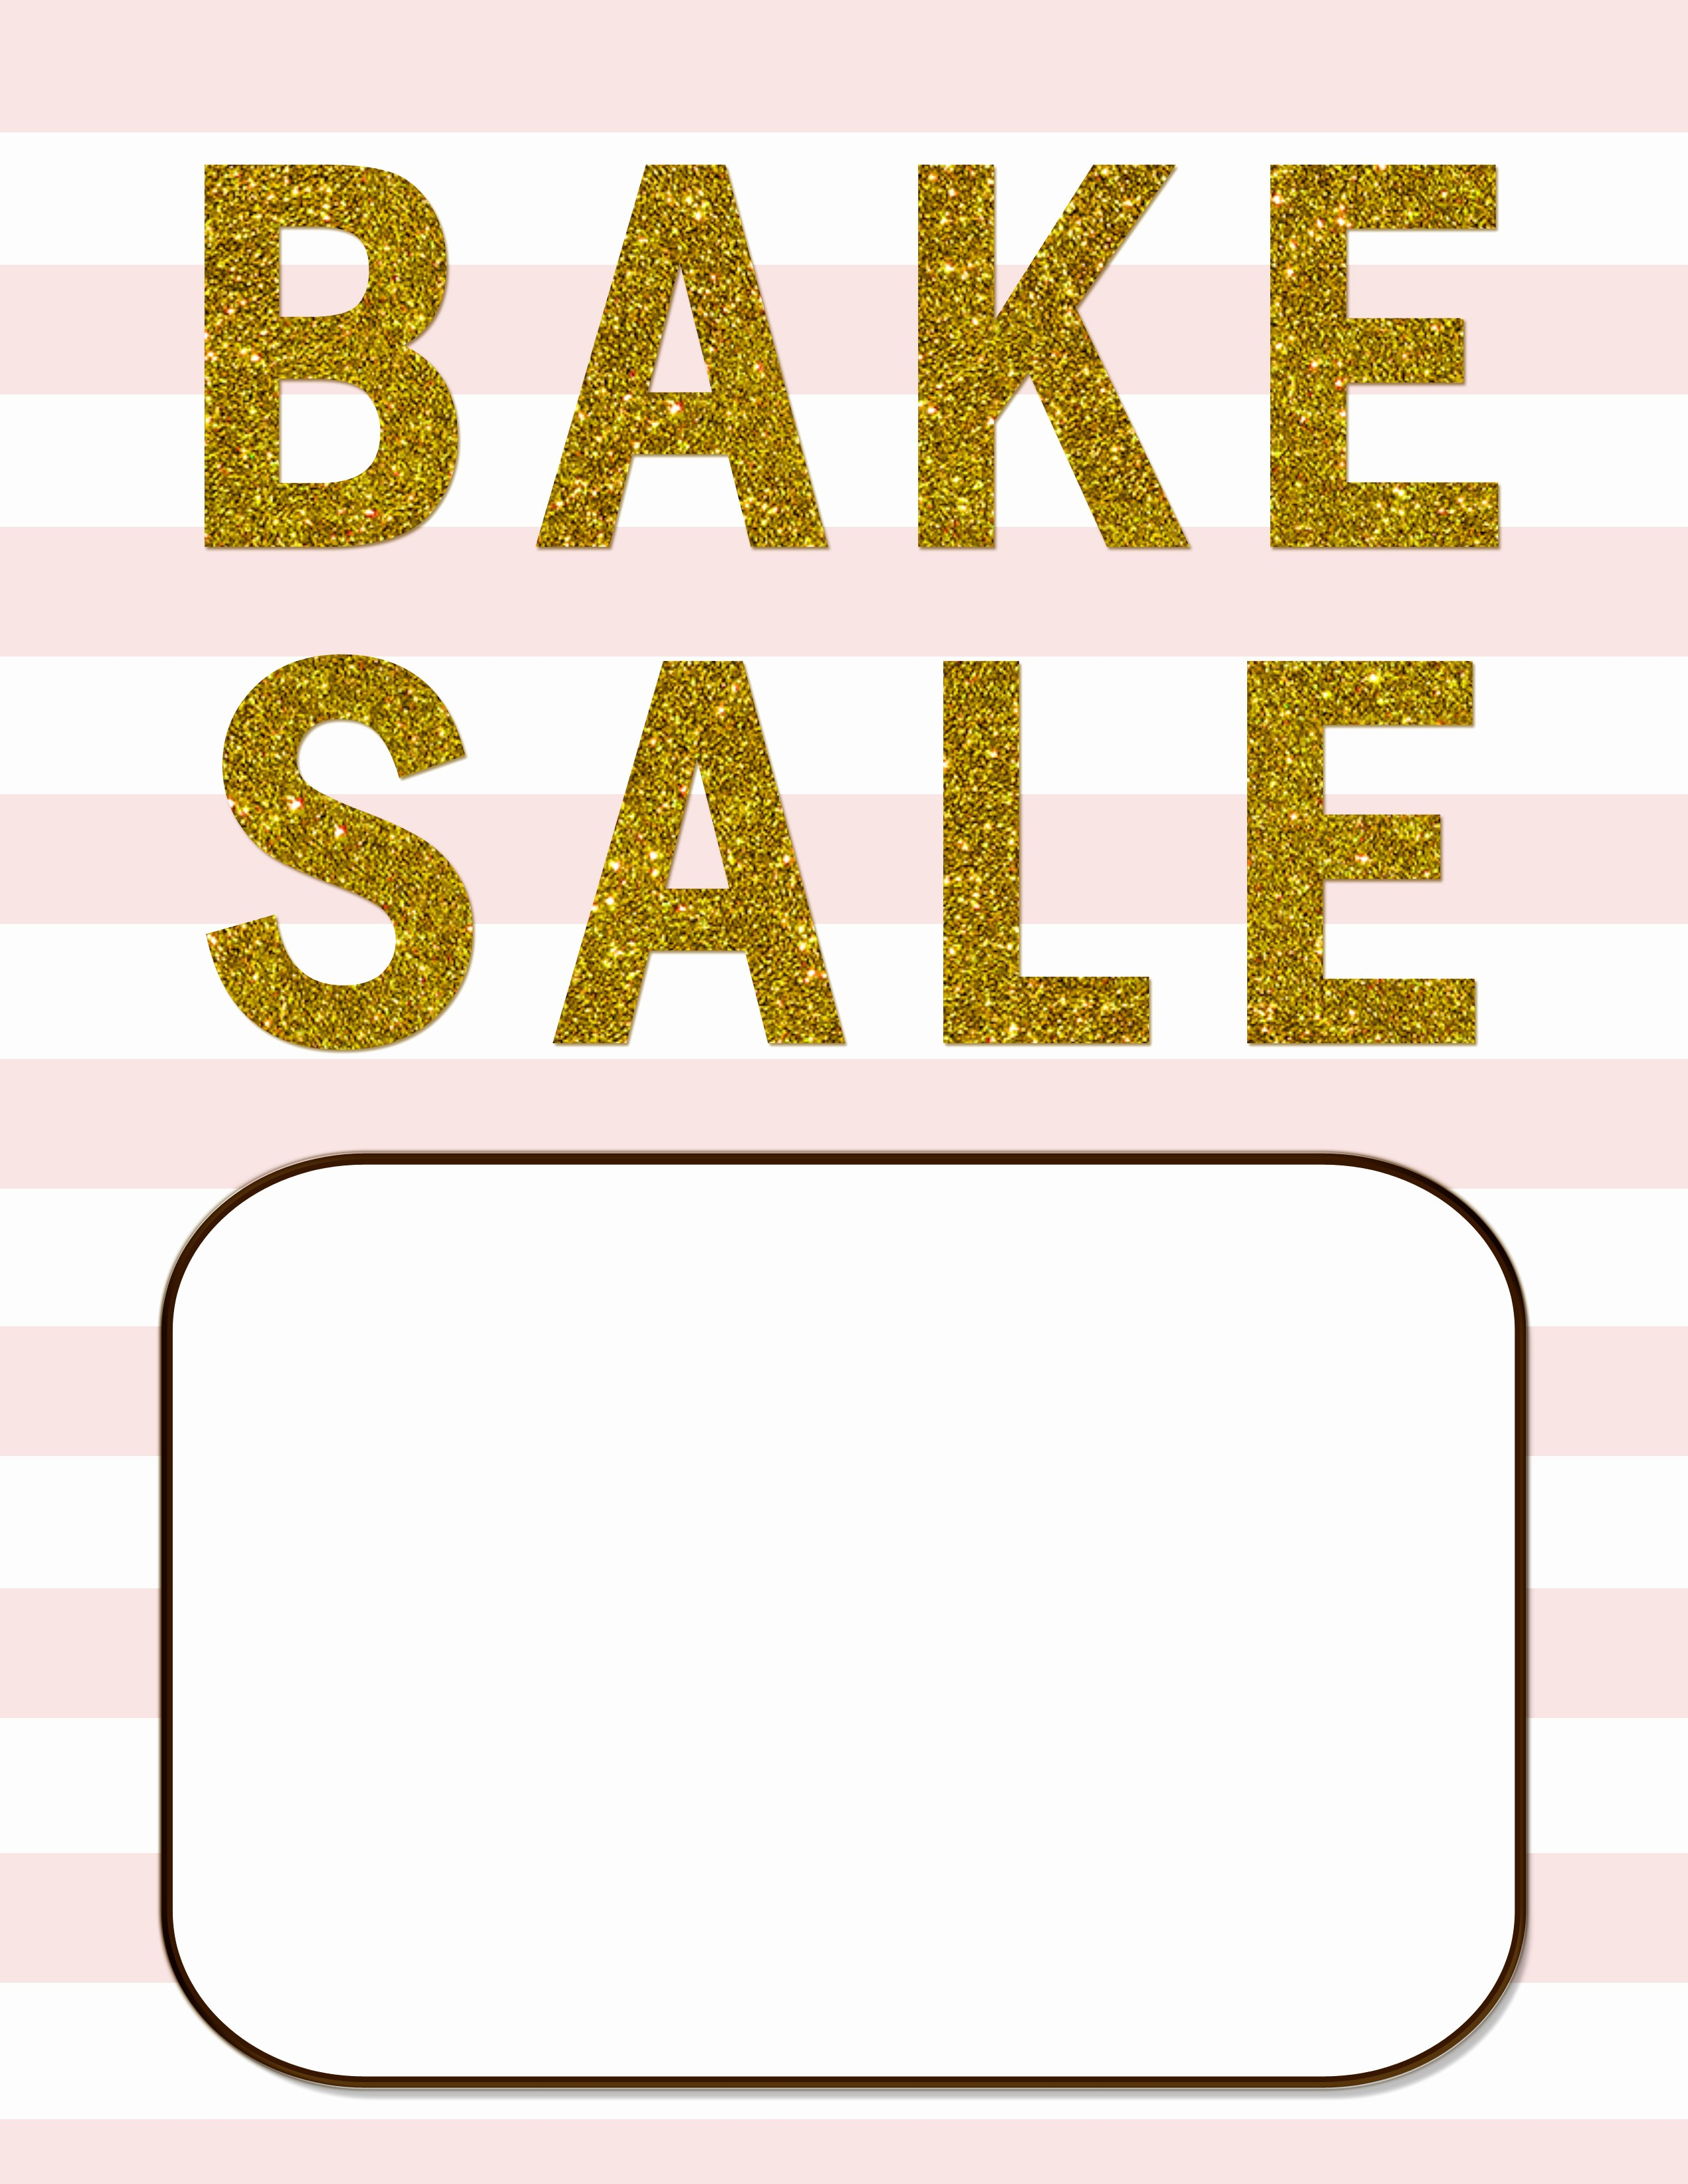 Bake Sale Flyer Template Word Elegant Bake Sale Flyers – Free Flyer Designs